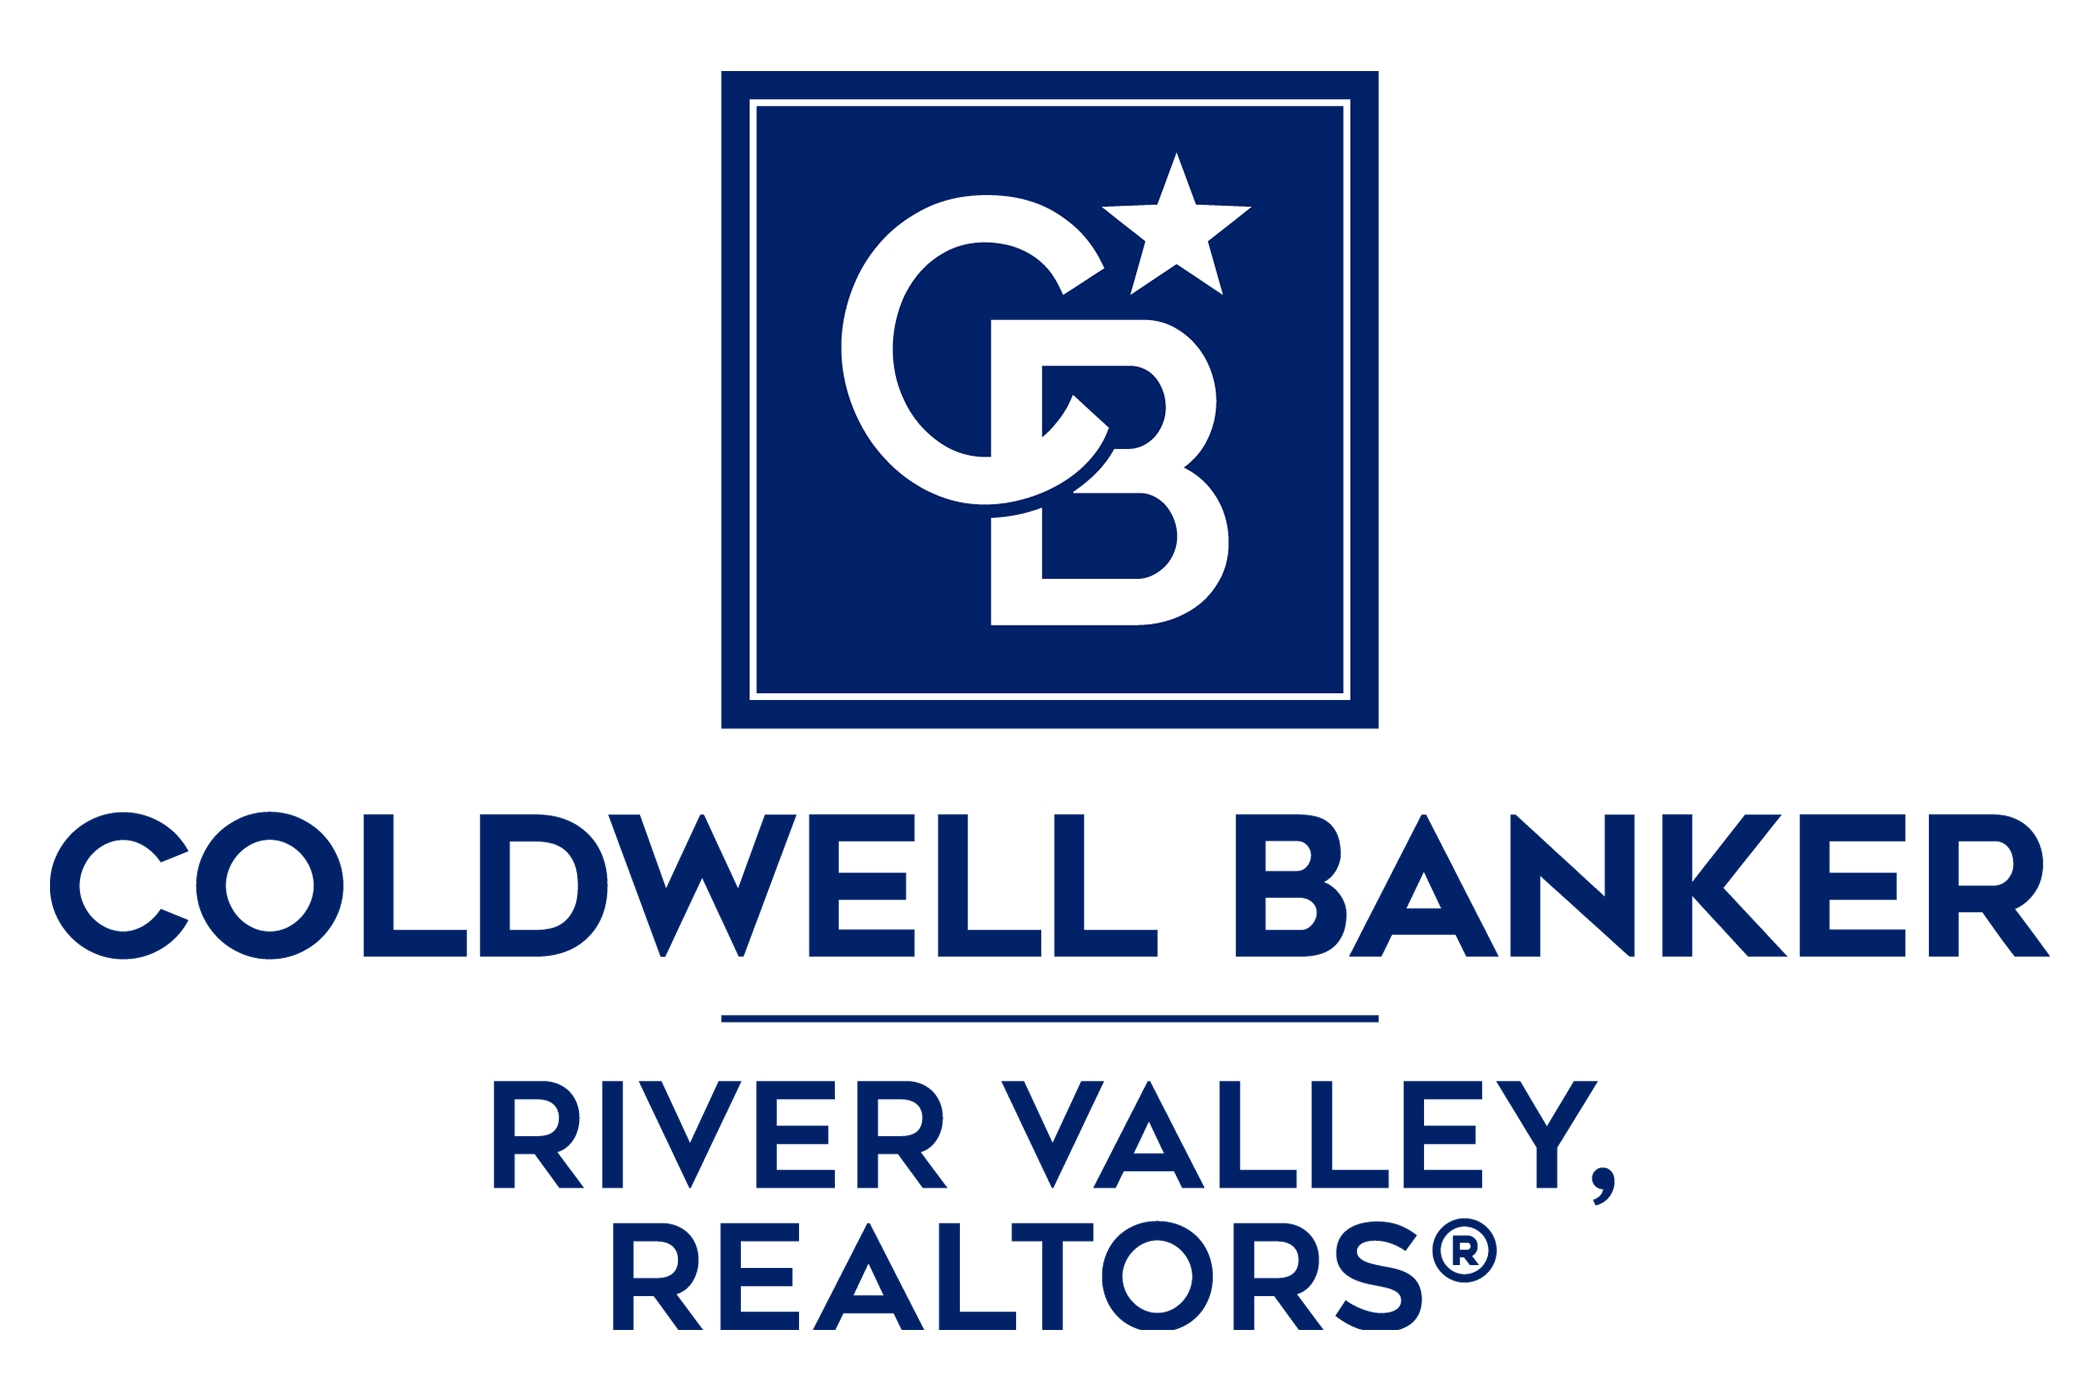 Laura Tralmer - Coldwell Banker River Valley, REALTORS